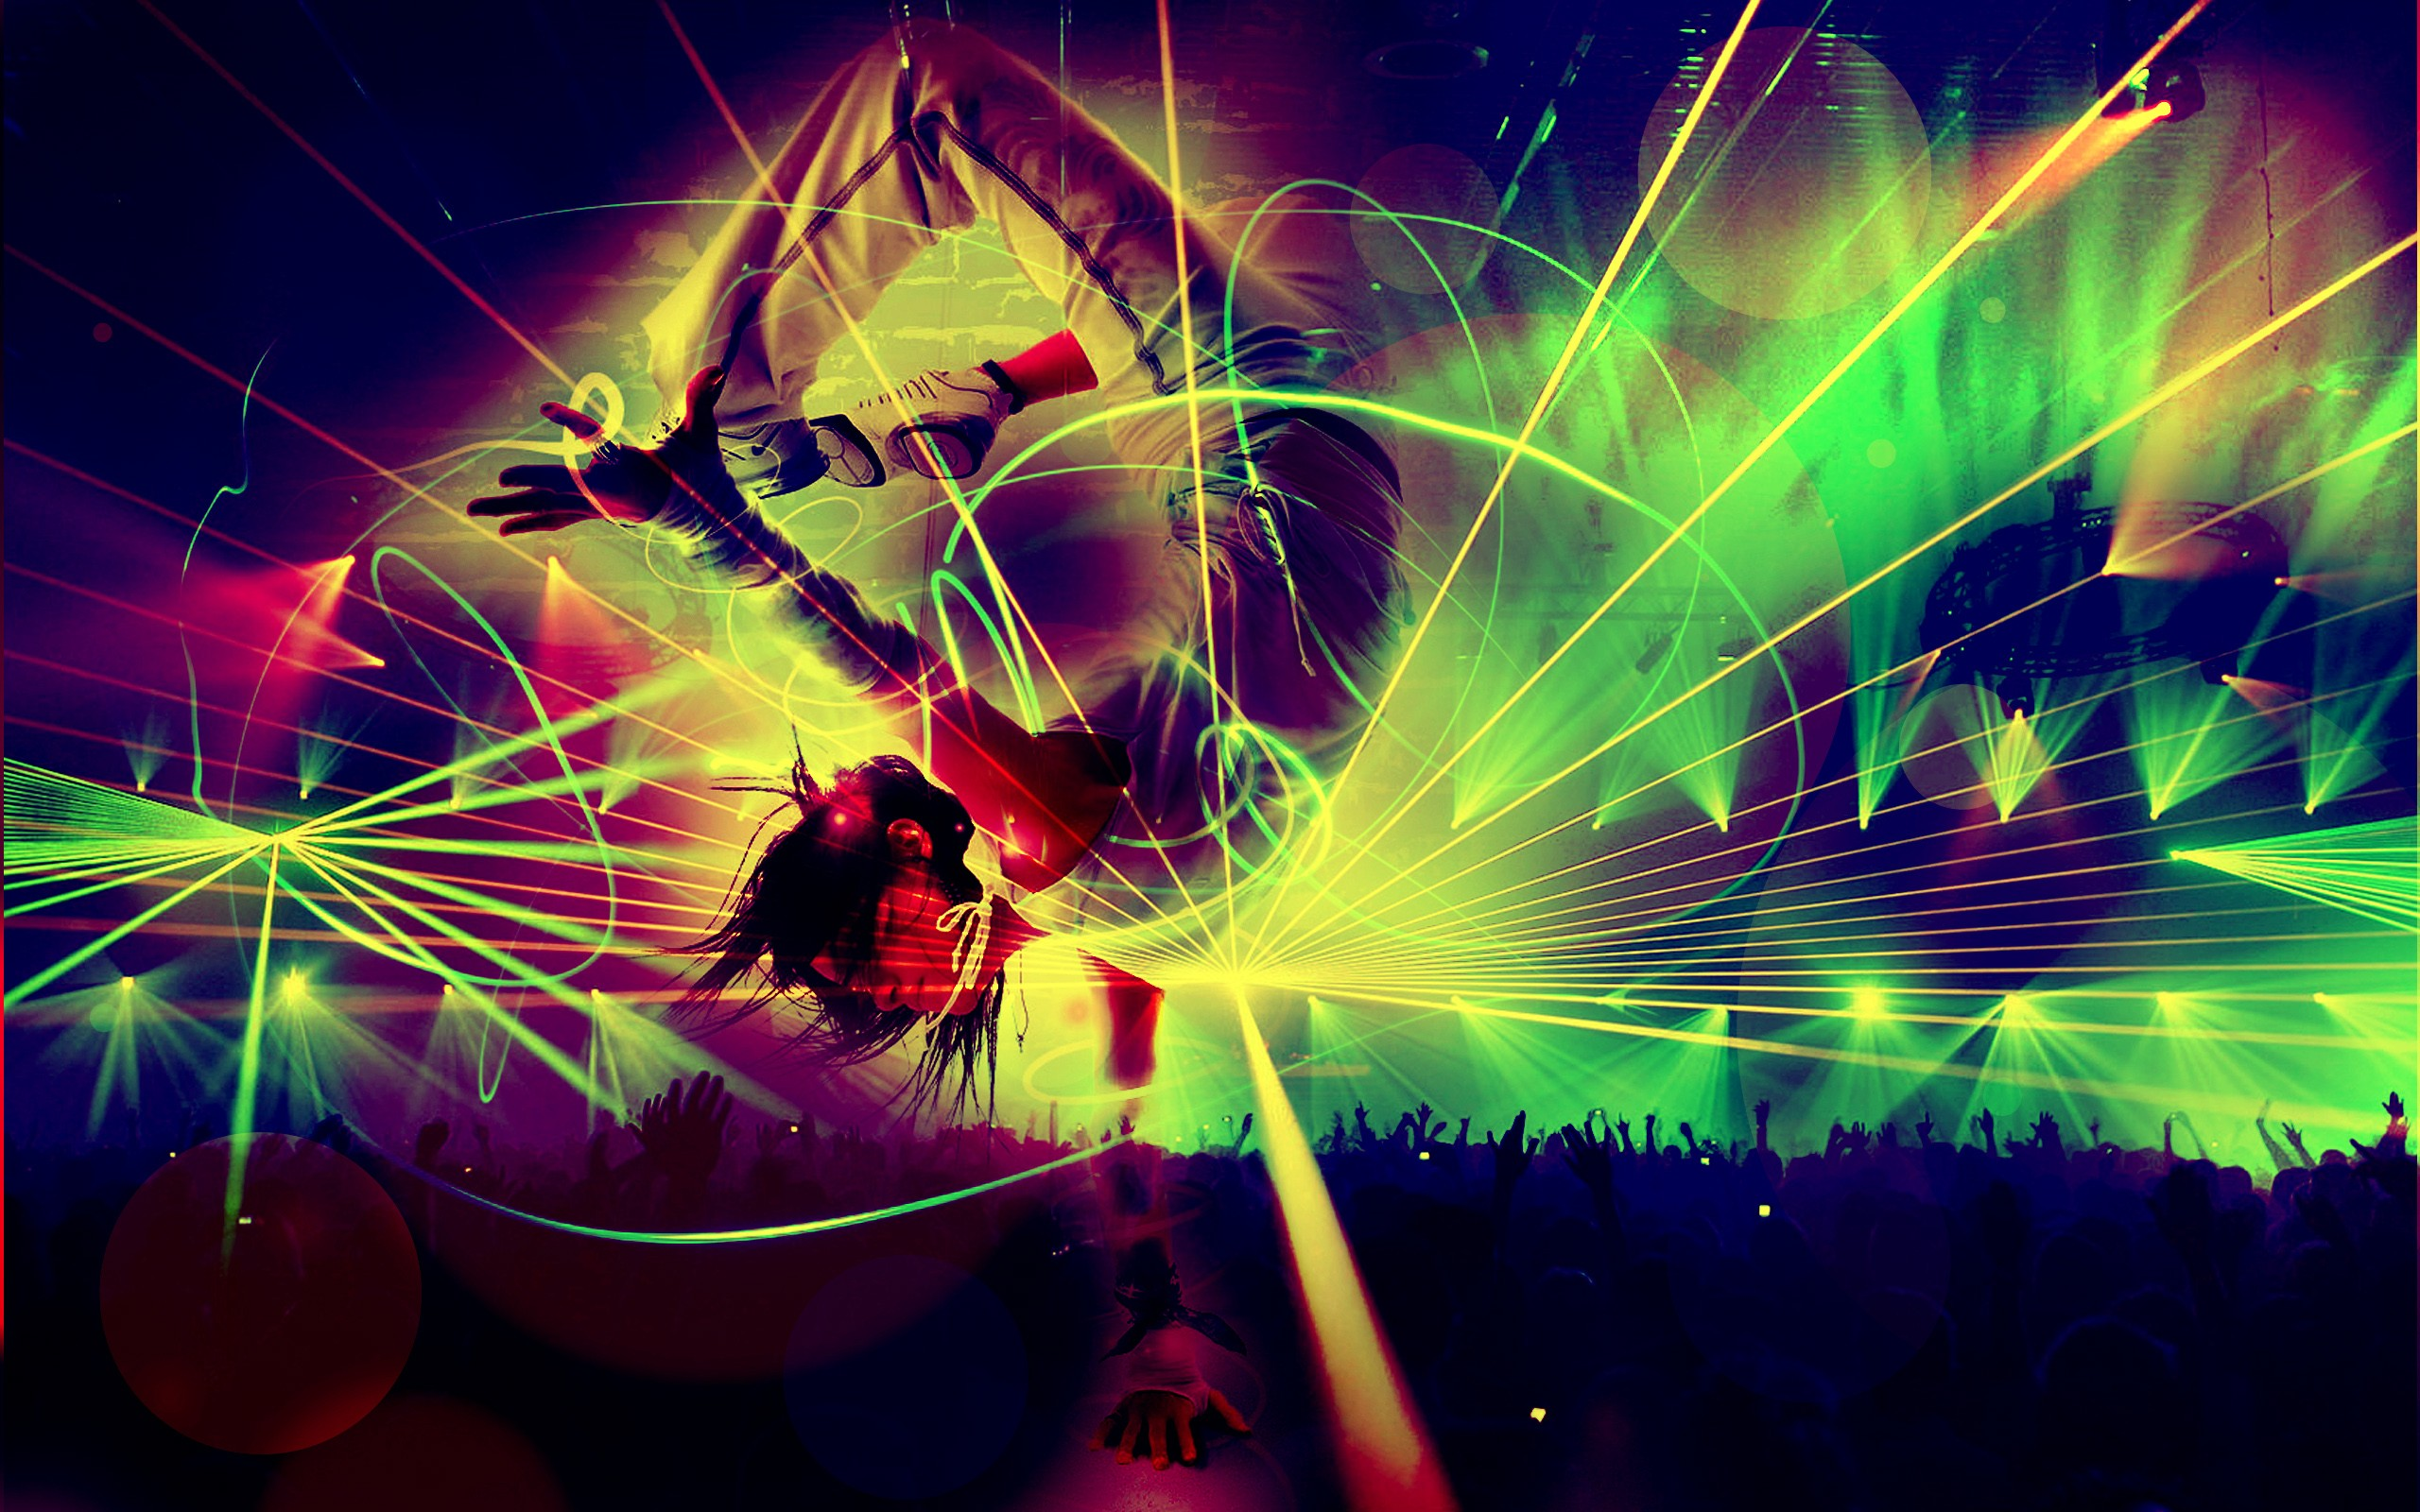 Party Dance Psychedelic Rave 2560x1600 Hd Wallpaper